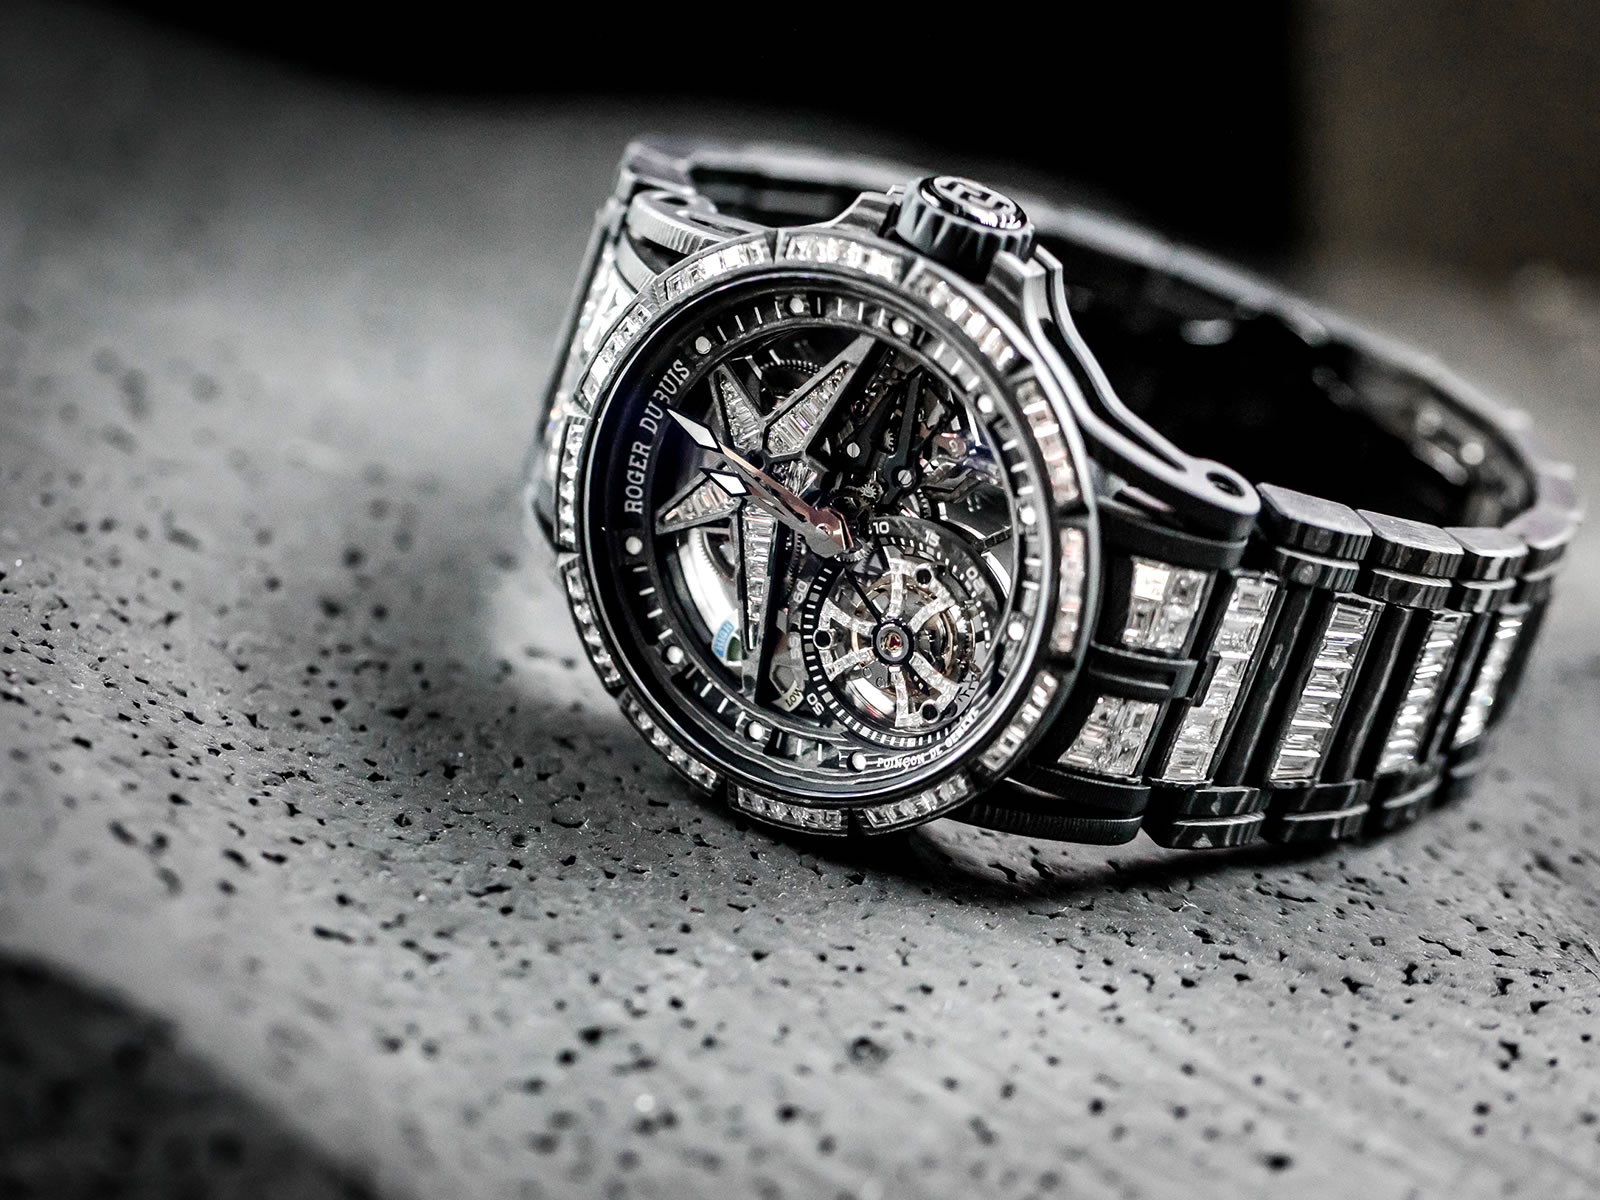 rddbex0675-roger-dubuis-excalibur-spider-ultimate-carbon-1-.jpg